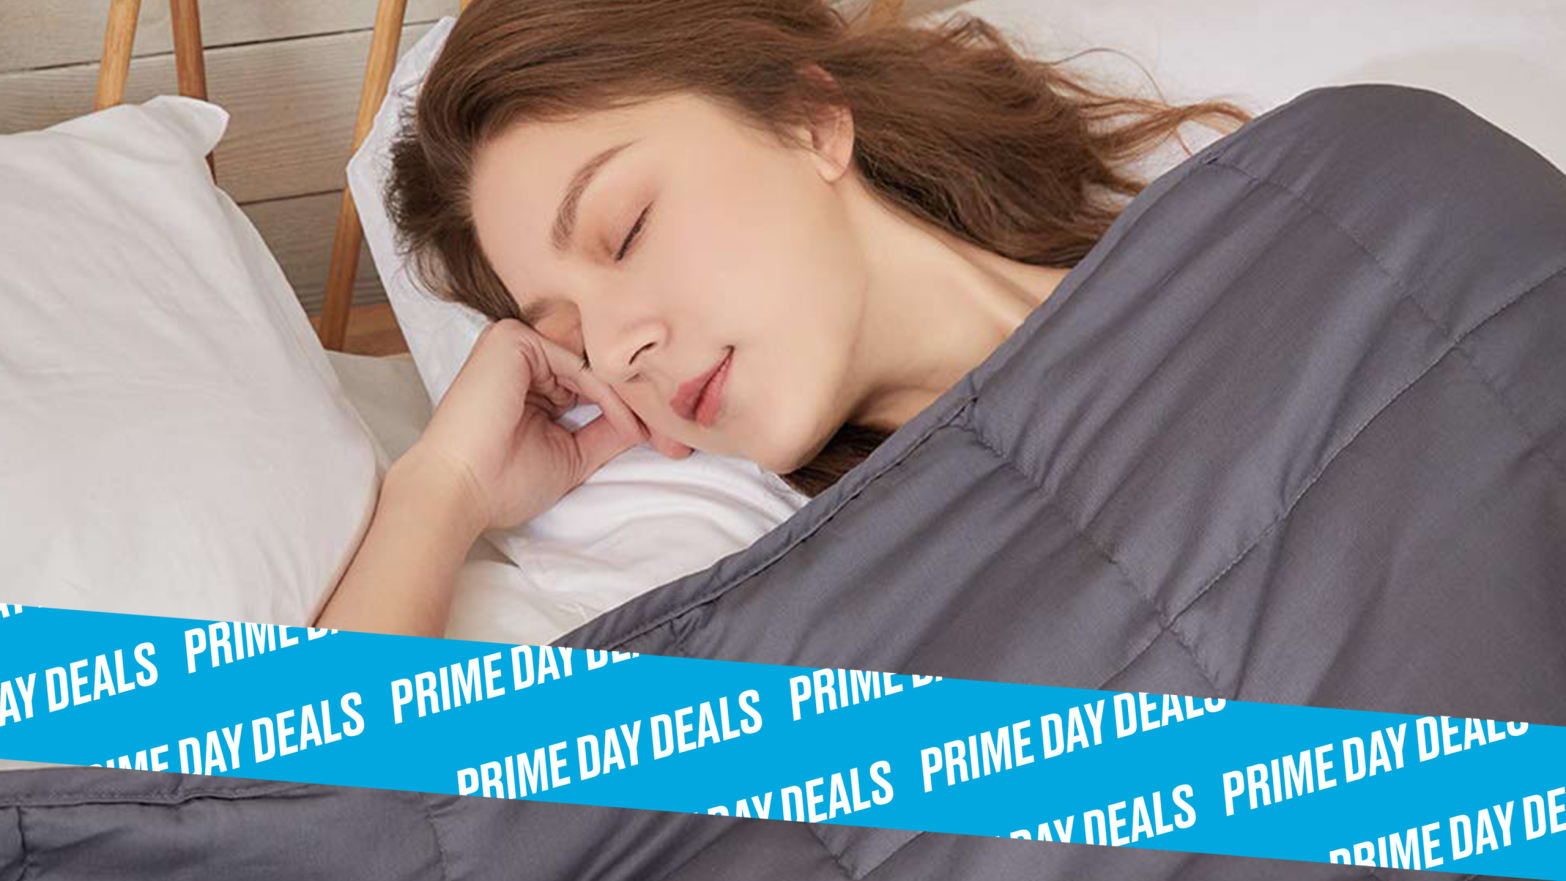 ZonLi Weighted Blankets are 20% Off for Prime Day